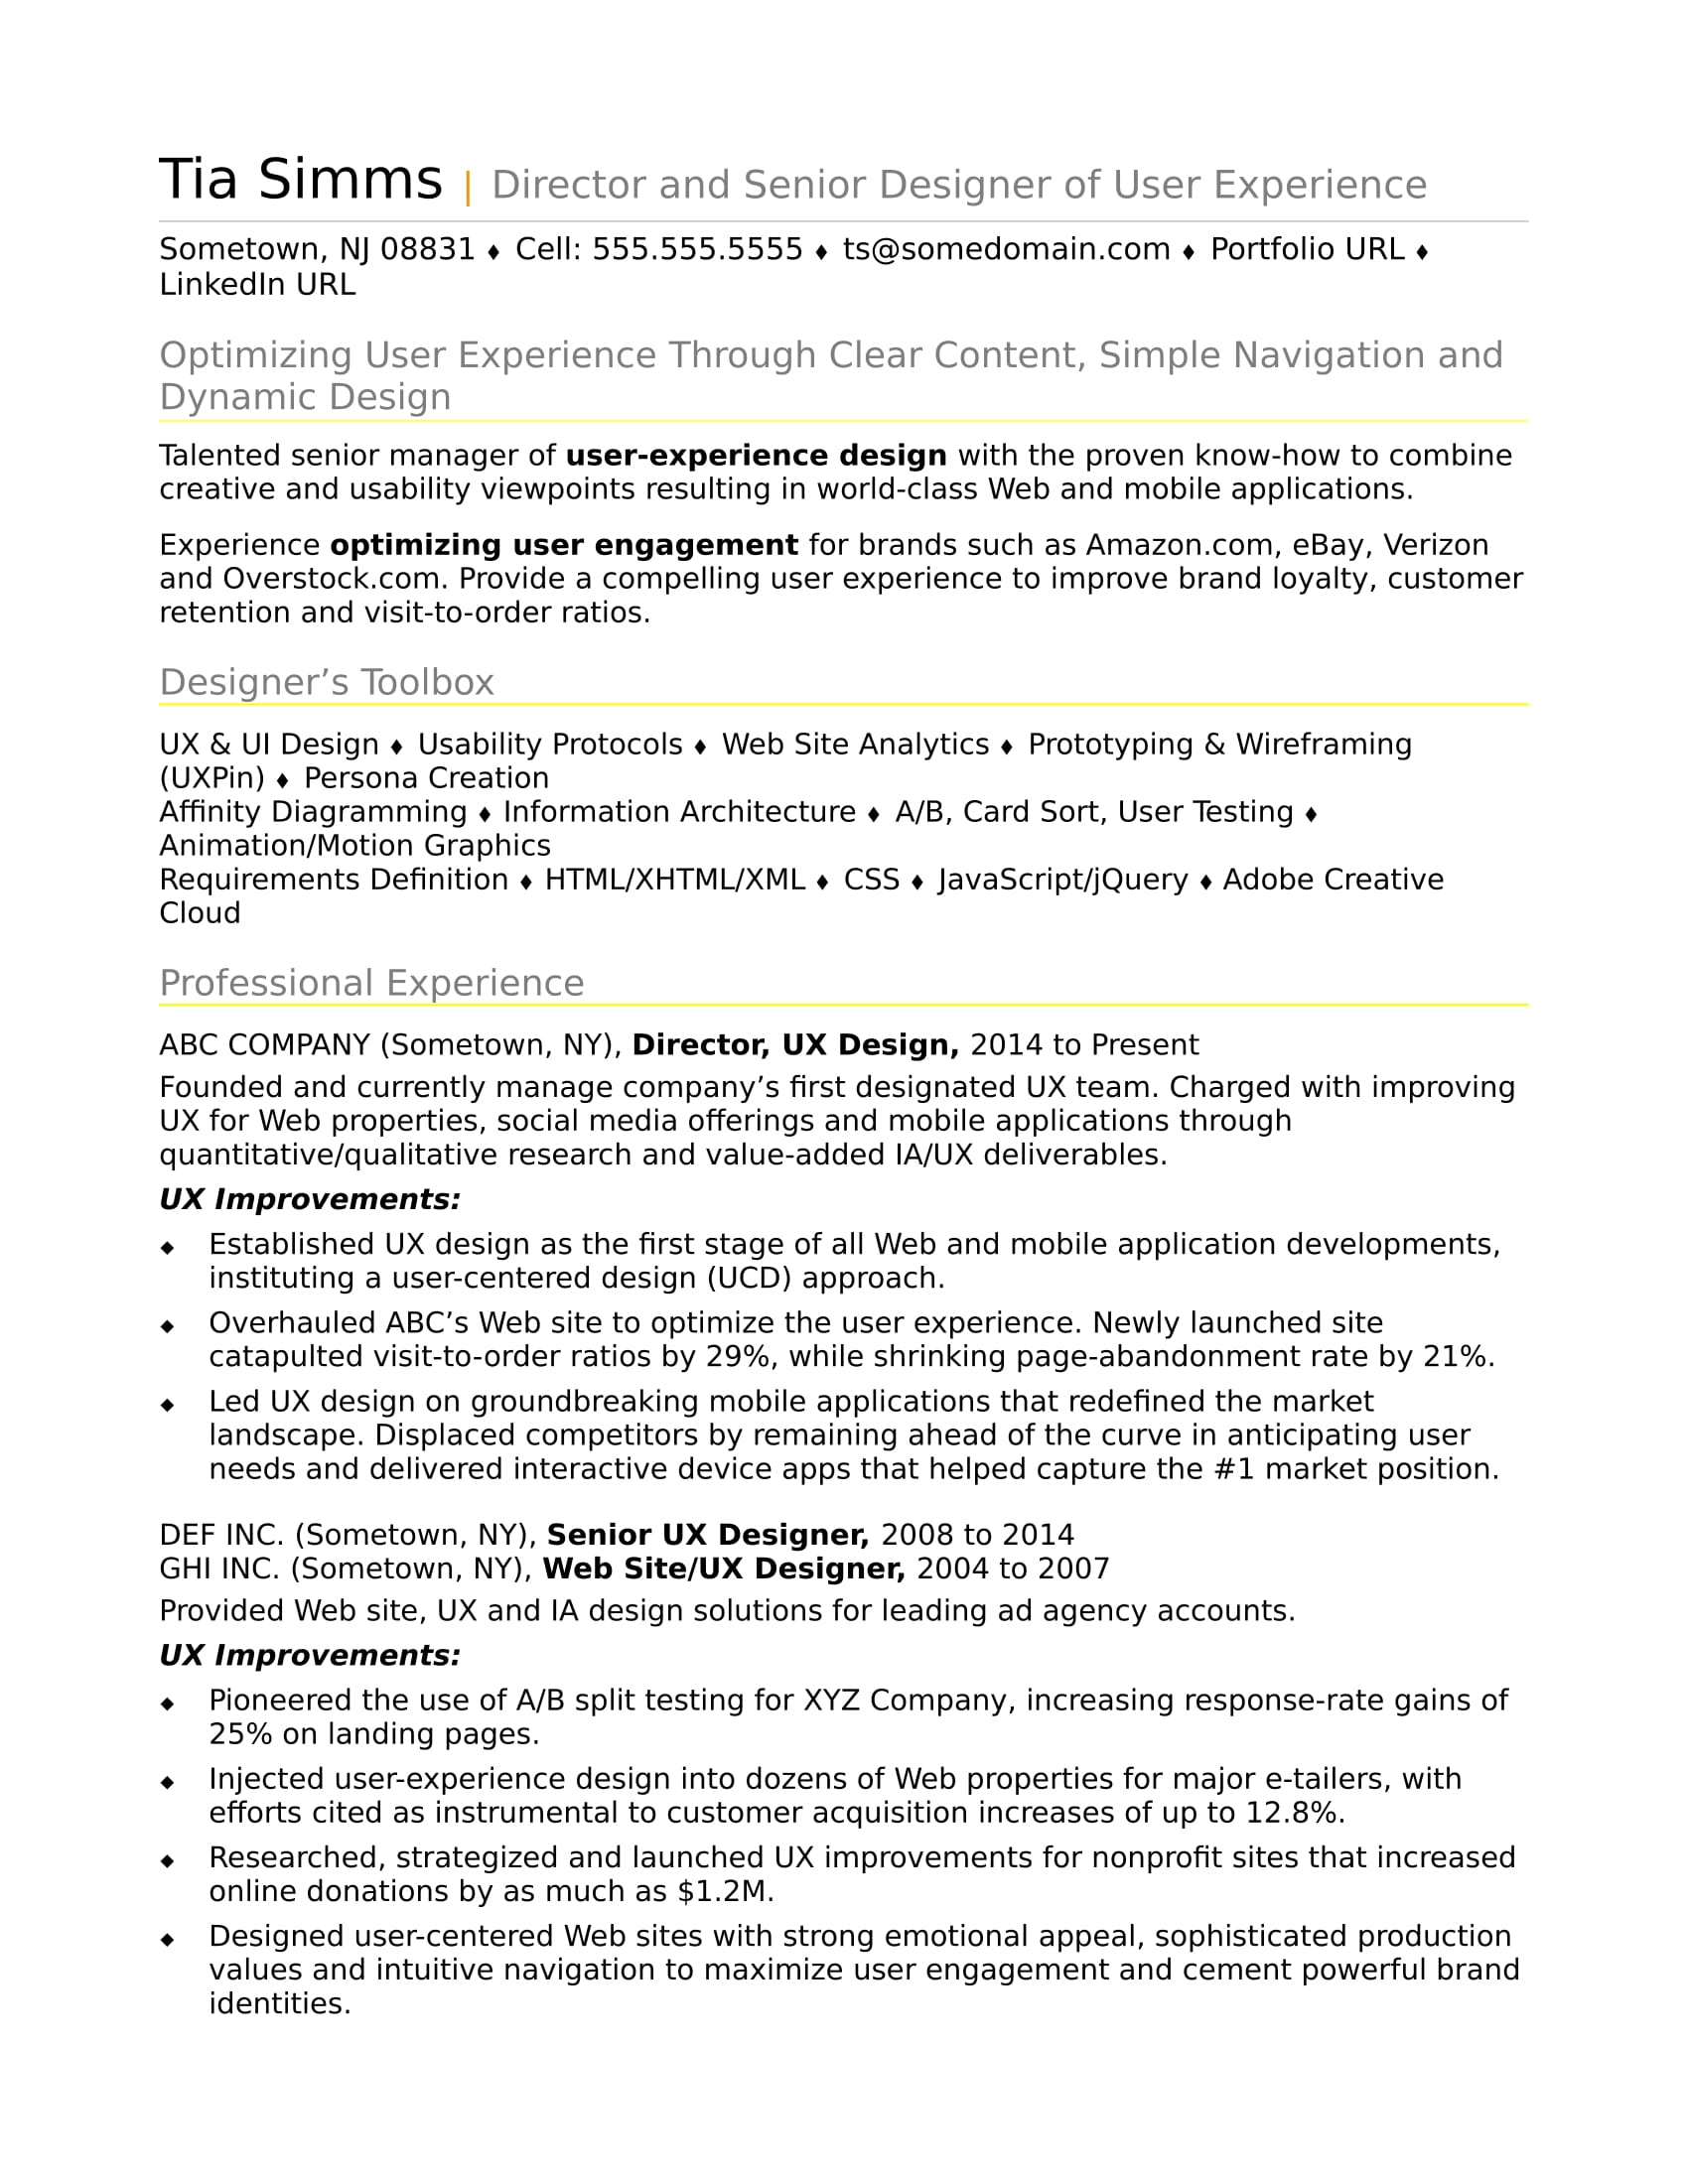 Sample Resume For An Experienced UX Designer  Resume Editing